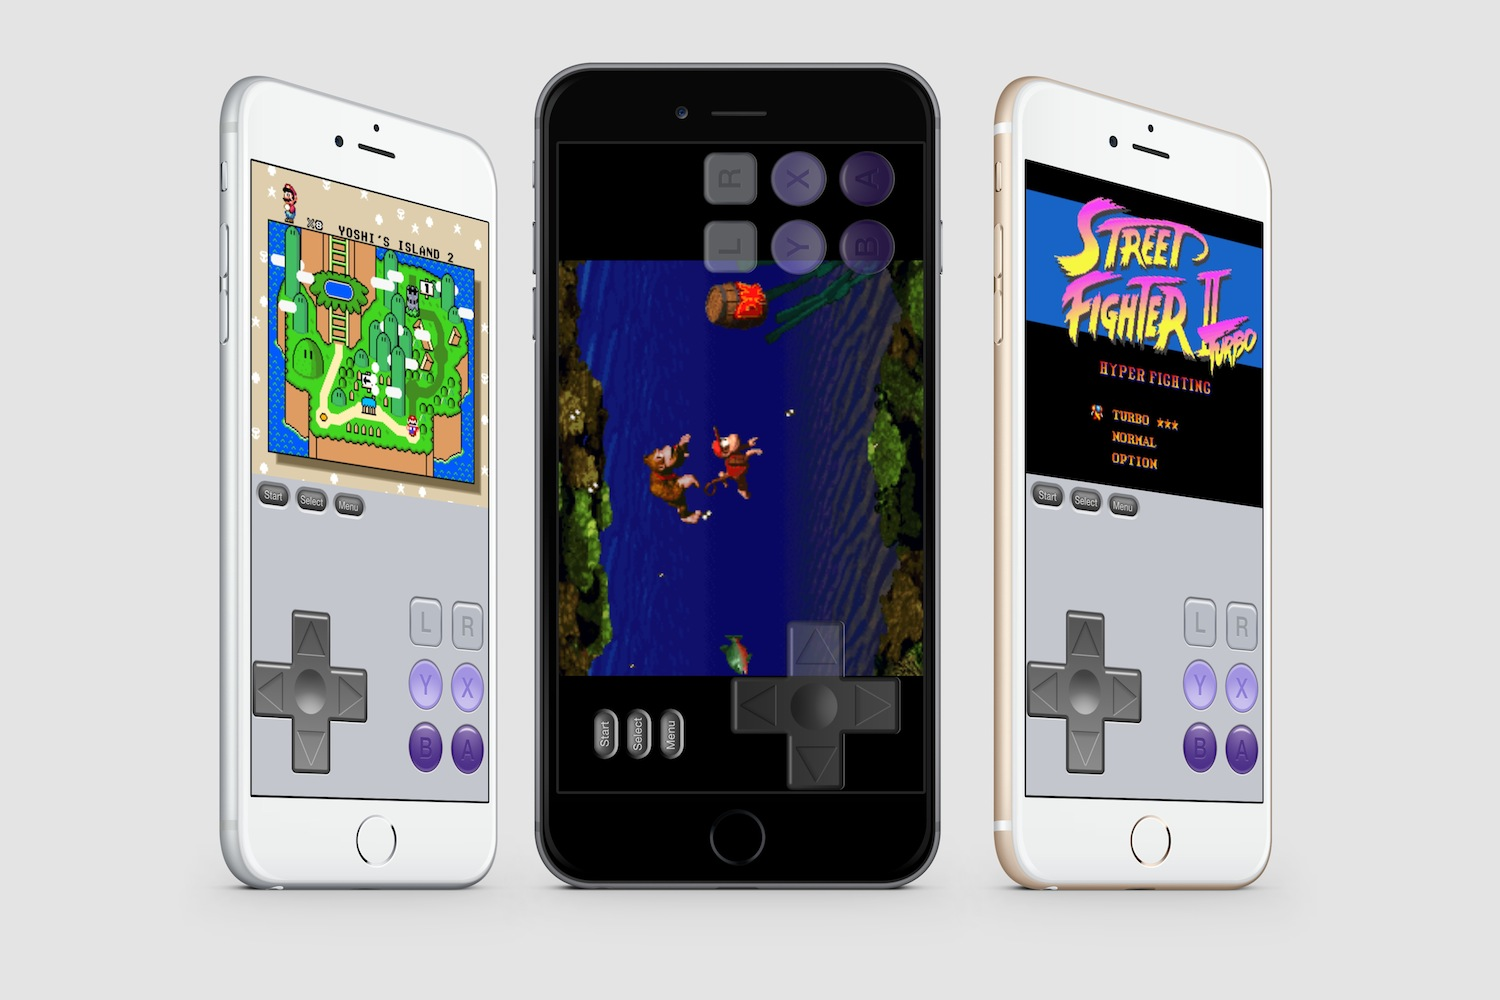 SNES Emulator for iOS 8 splash